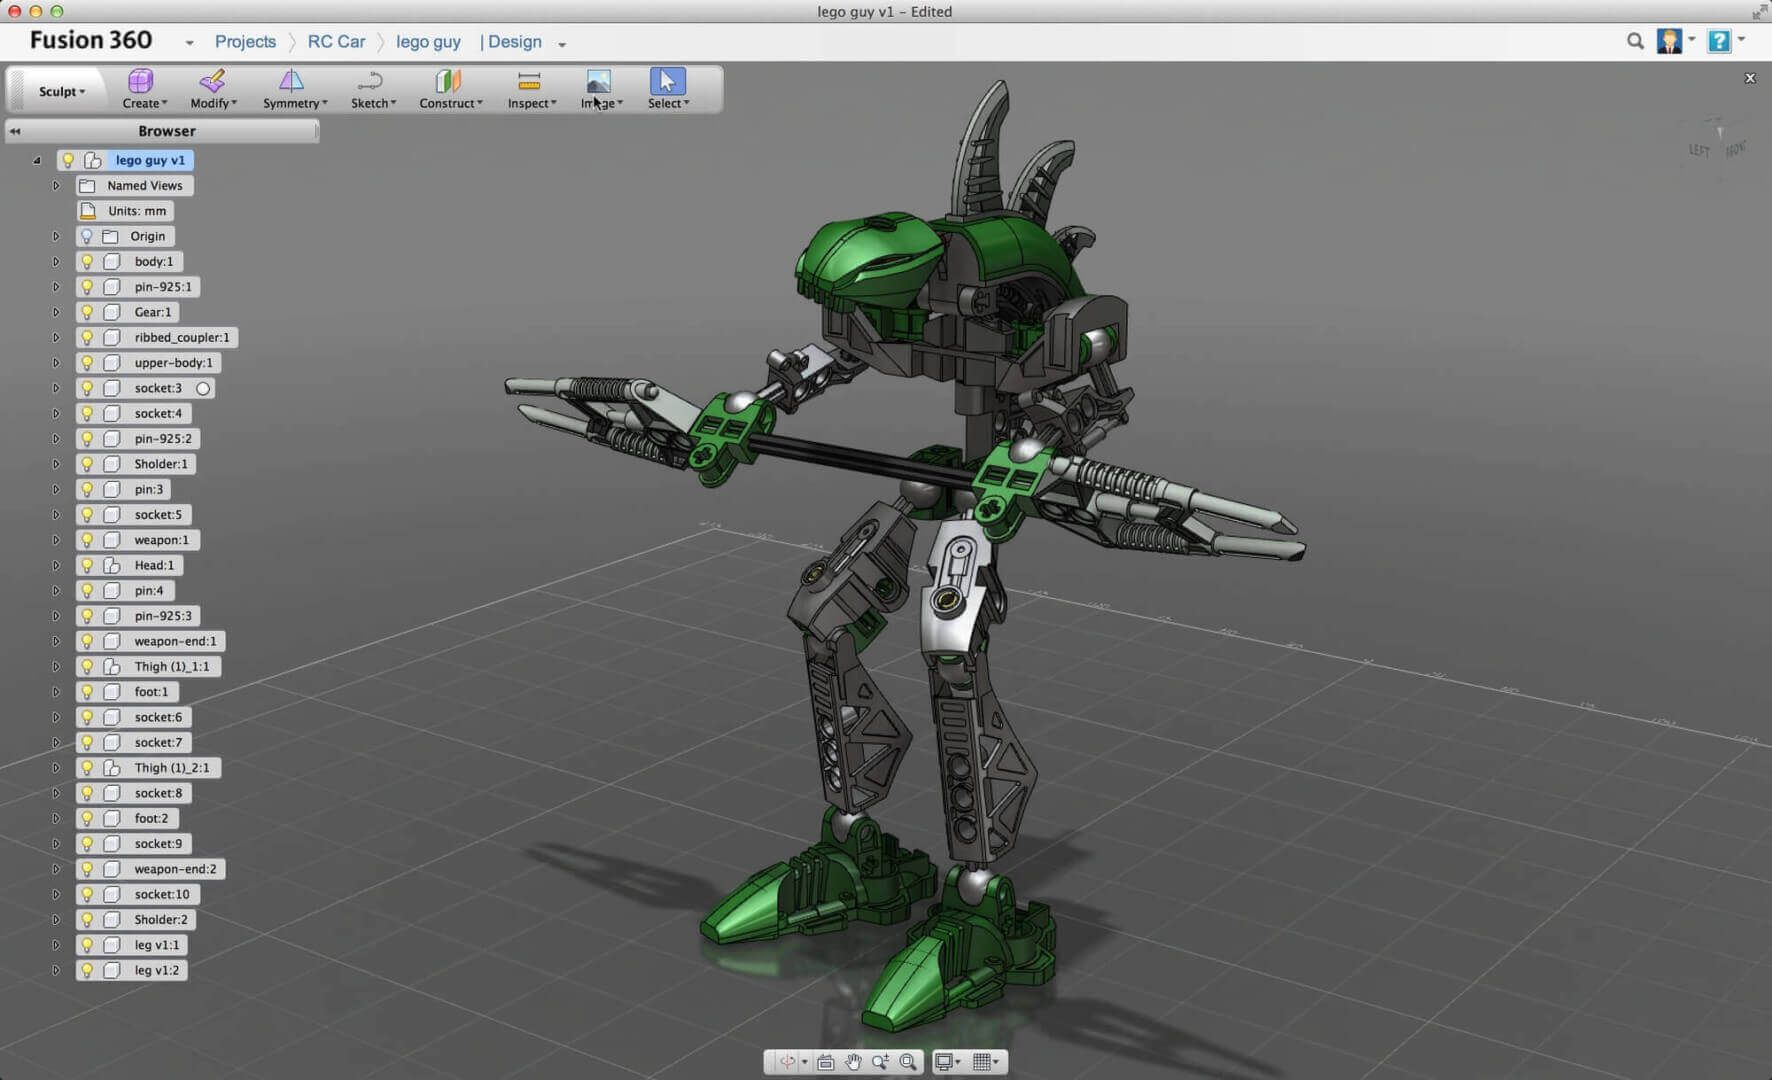 The Best Free 3d Printing Software 3d Design Software Free 3d